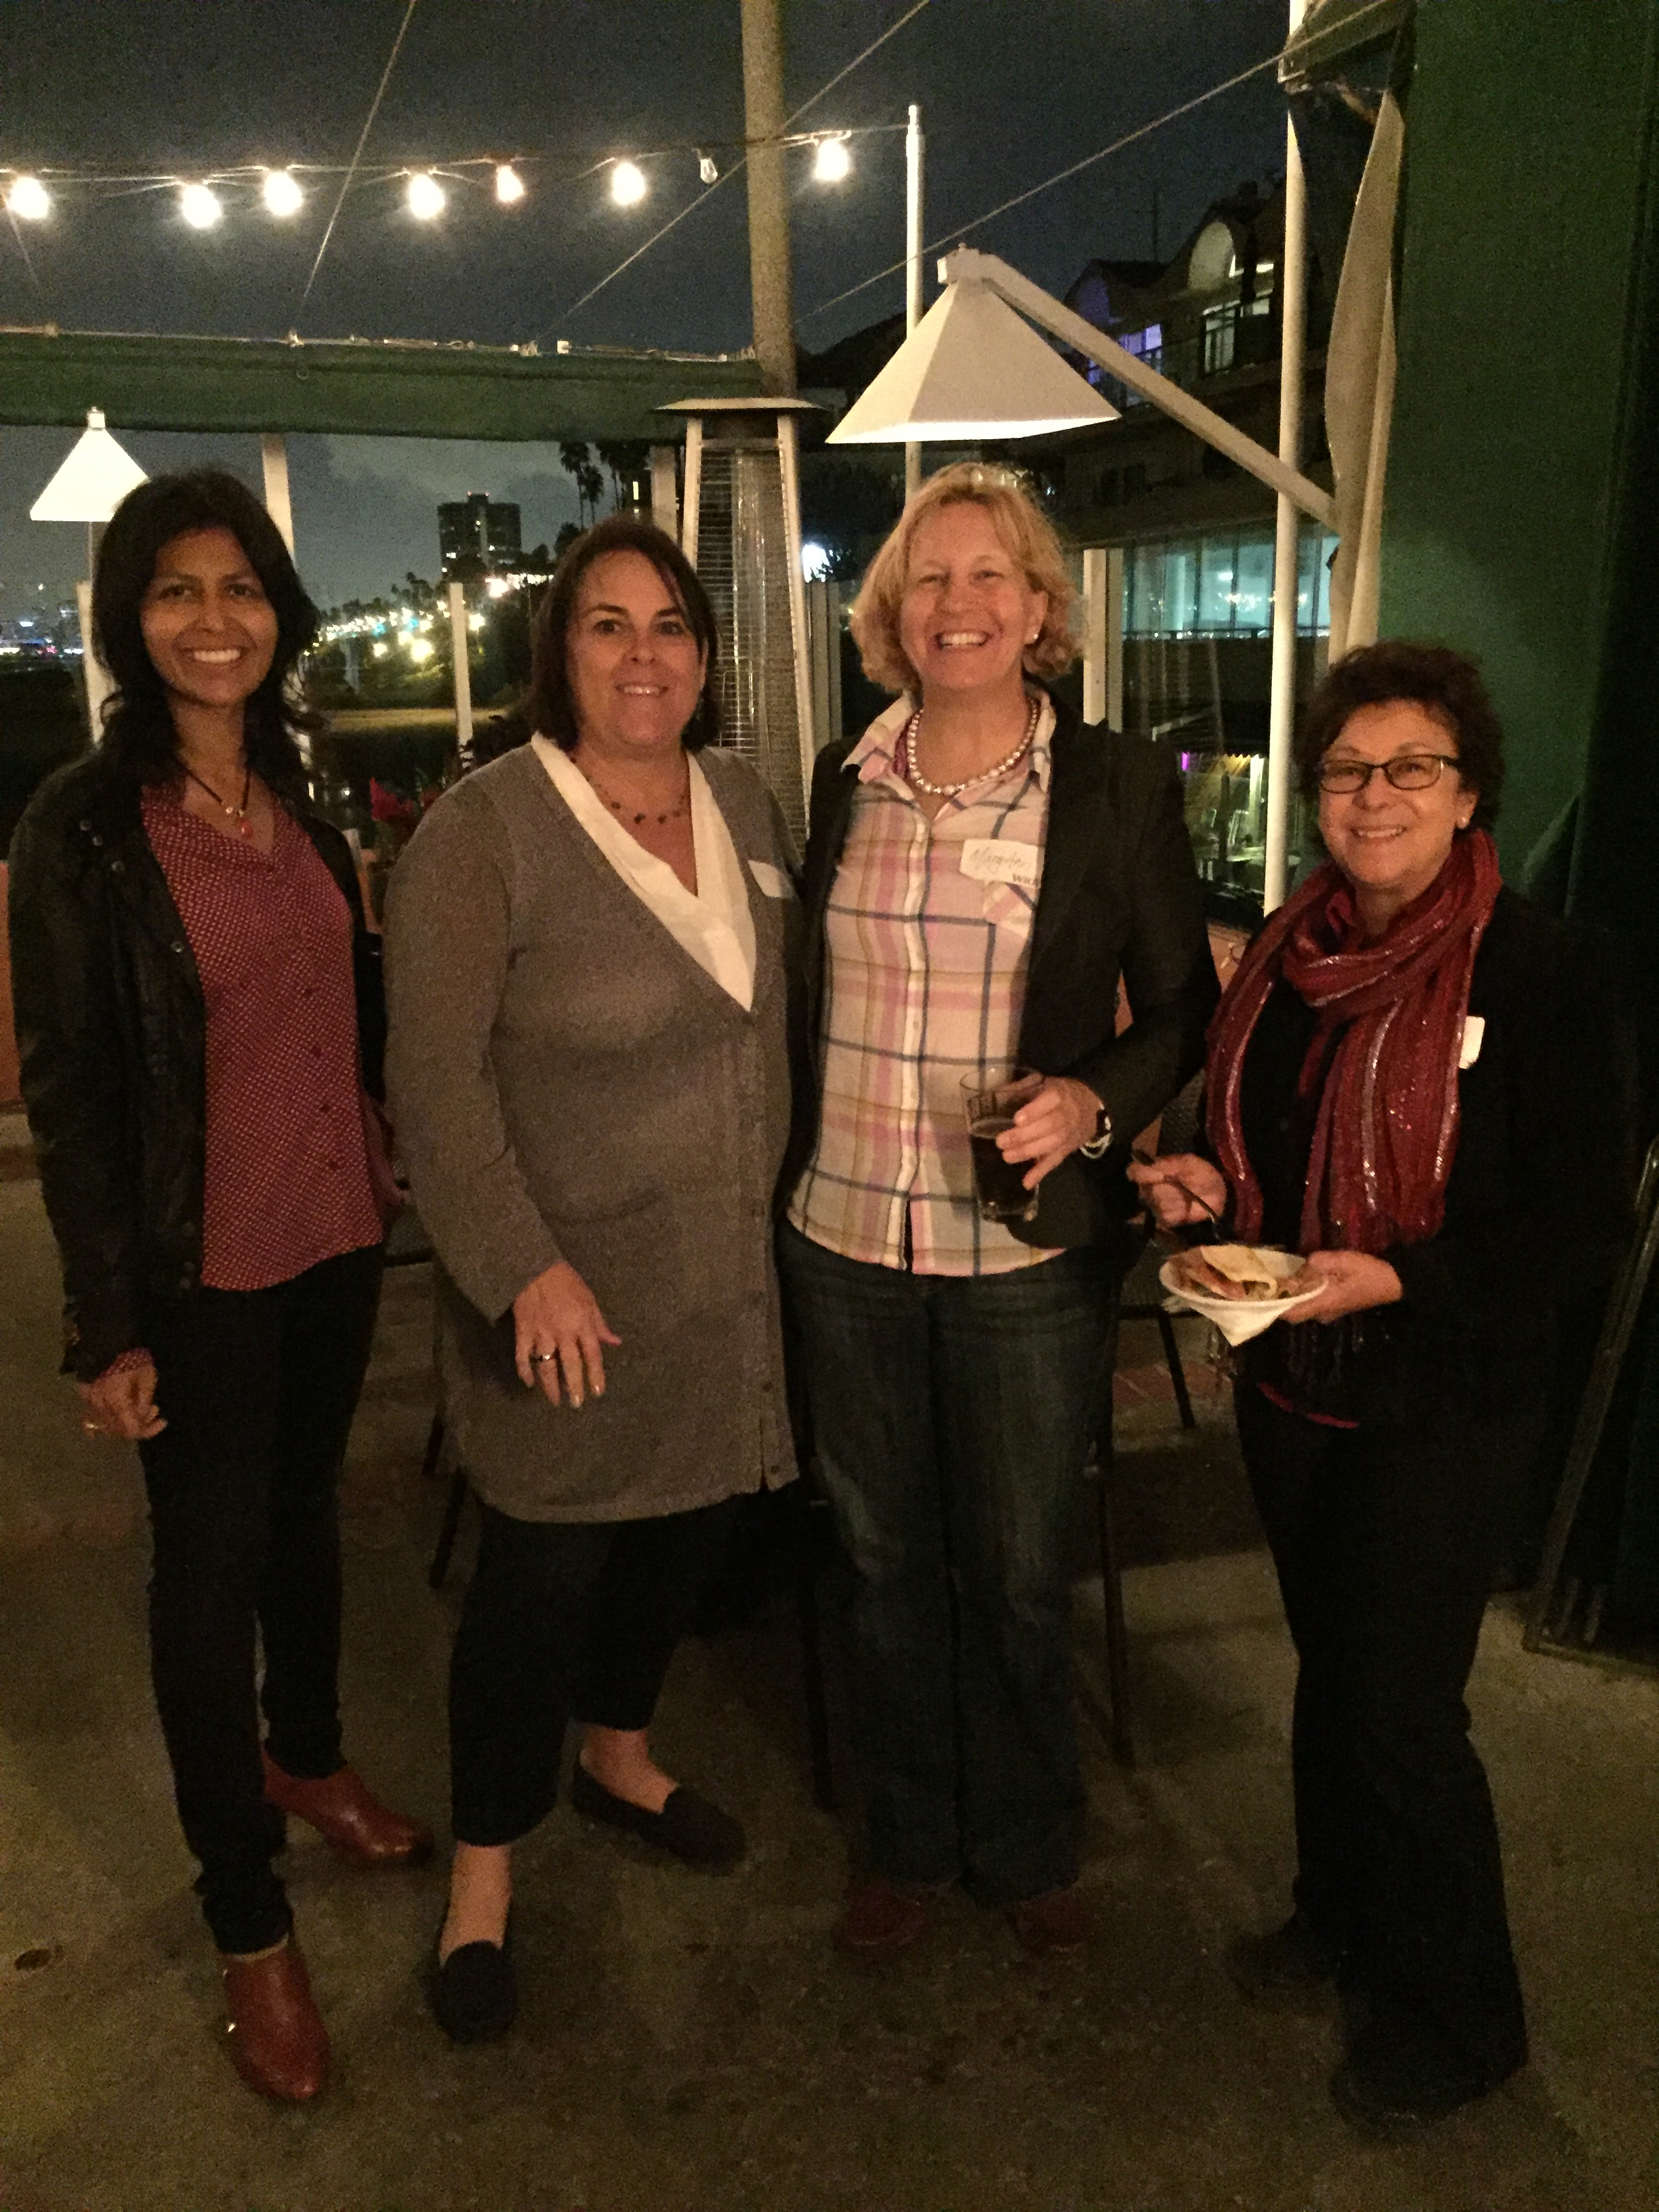 End of Year Party at Belmont Brewery hosted by Critchfield Mechanical, Inc of So. California